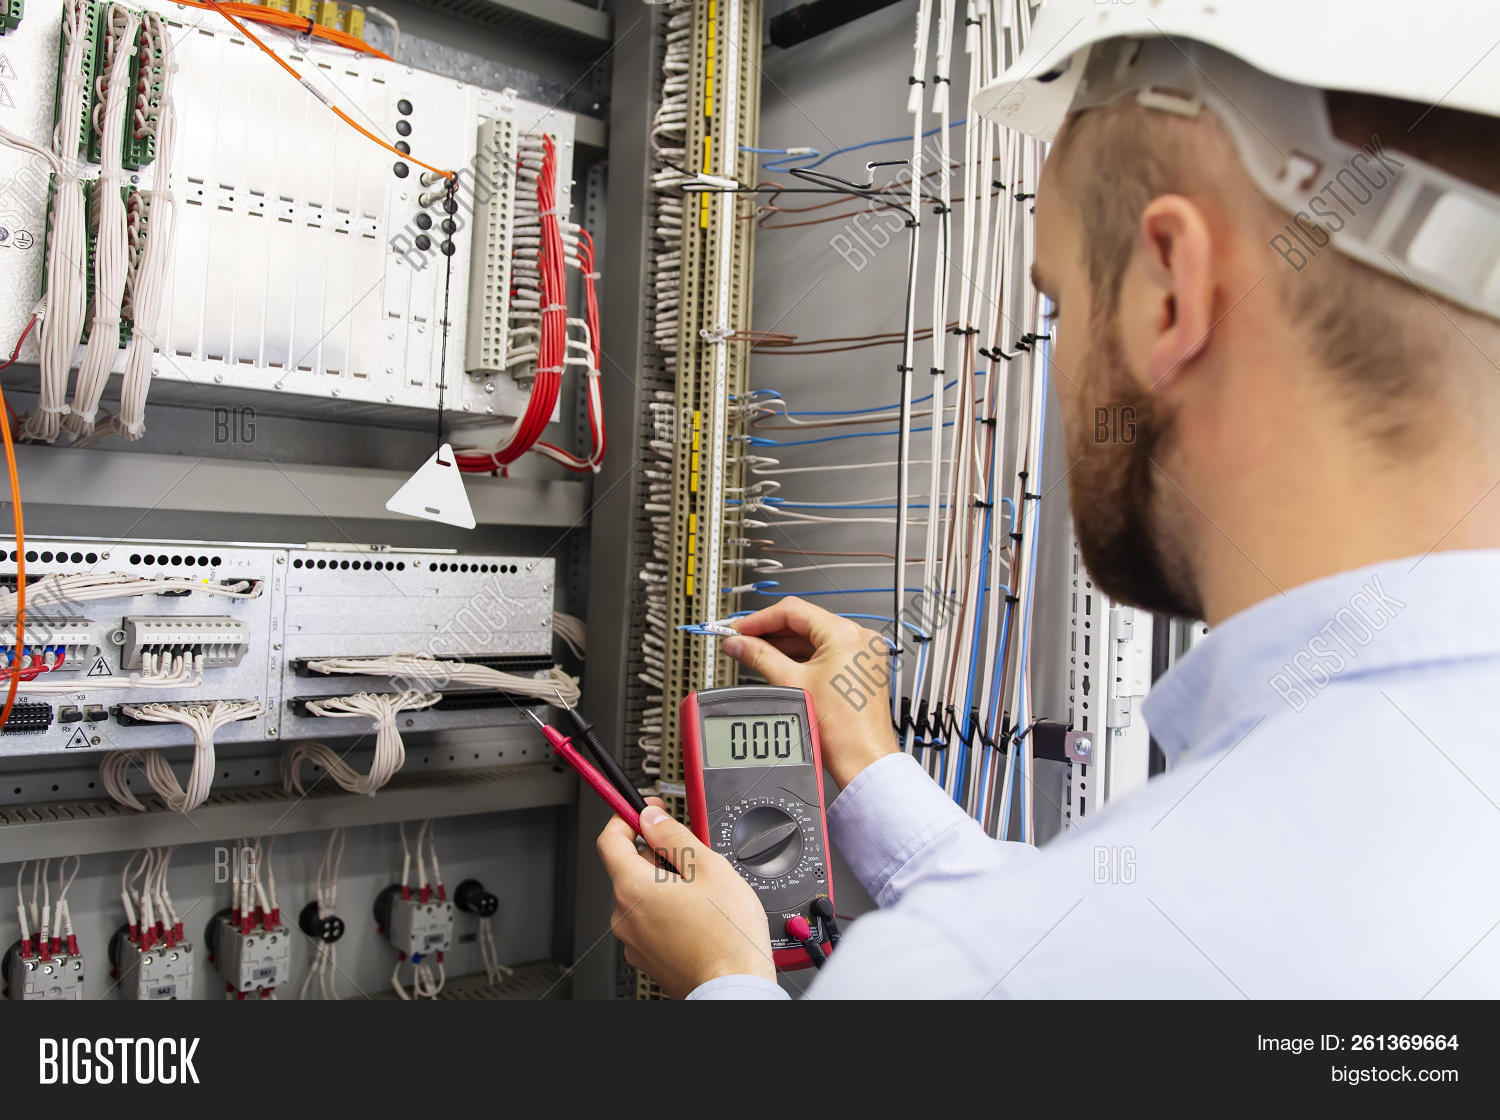 Engineer Electrician Image & Photo (Free Trial) | Bigstock on country test, power test, pump test, gear test, voltage regulator test, seal test, home test, the outsiders test, belt test,